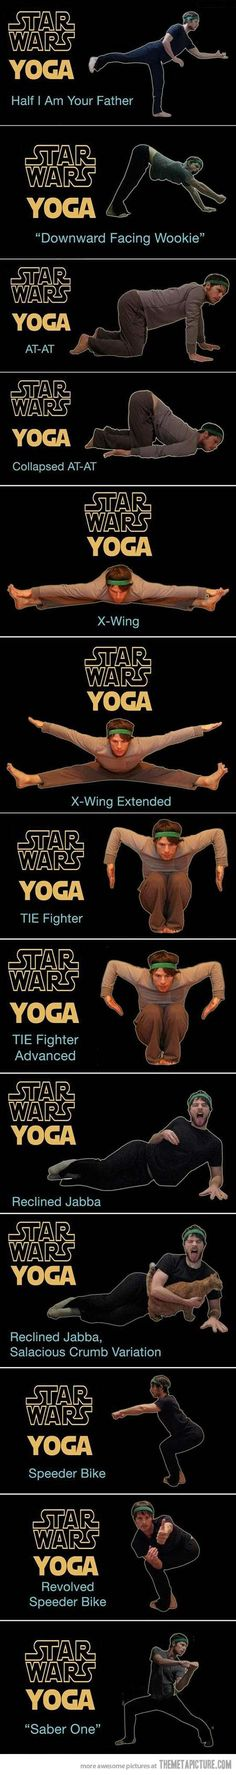 Star Wars Yoga… Yoga I could actually get my husband to do with me